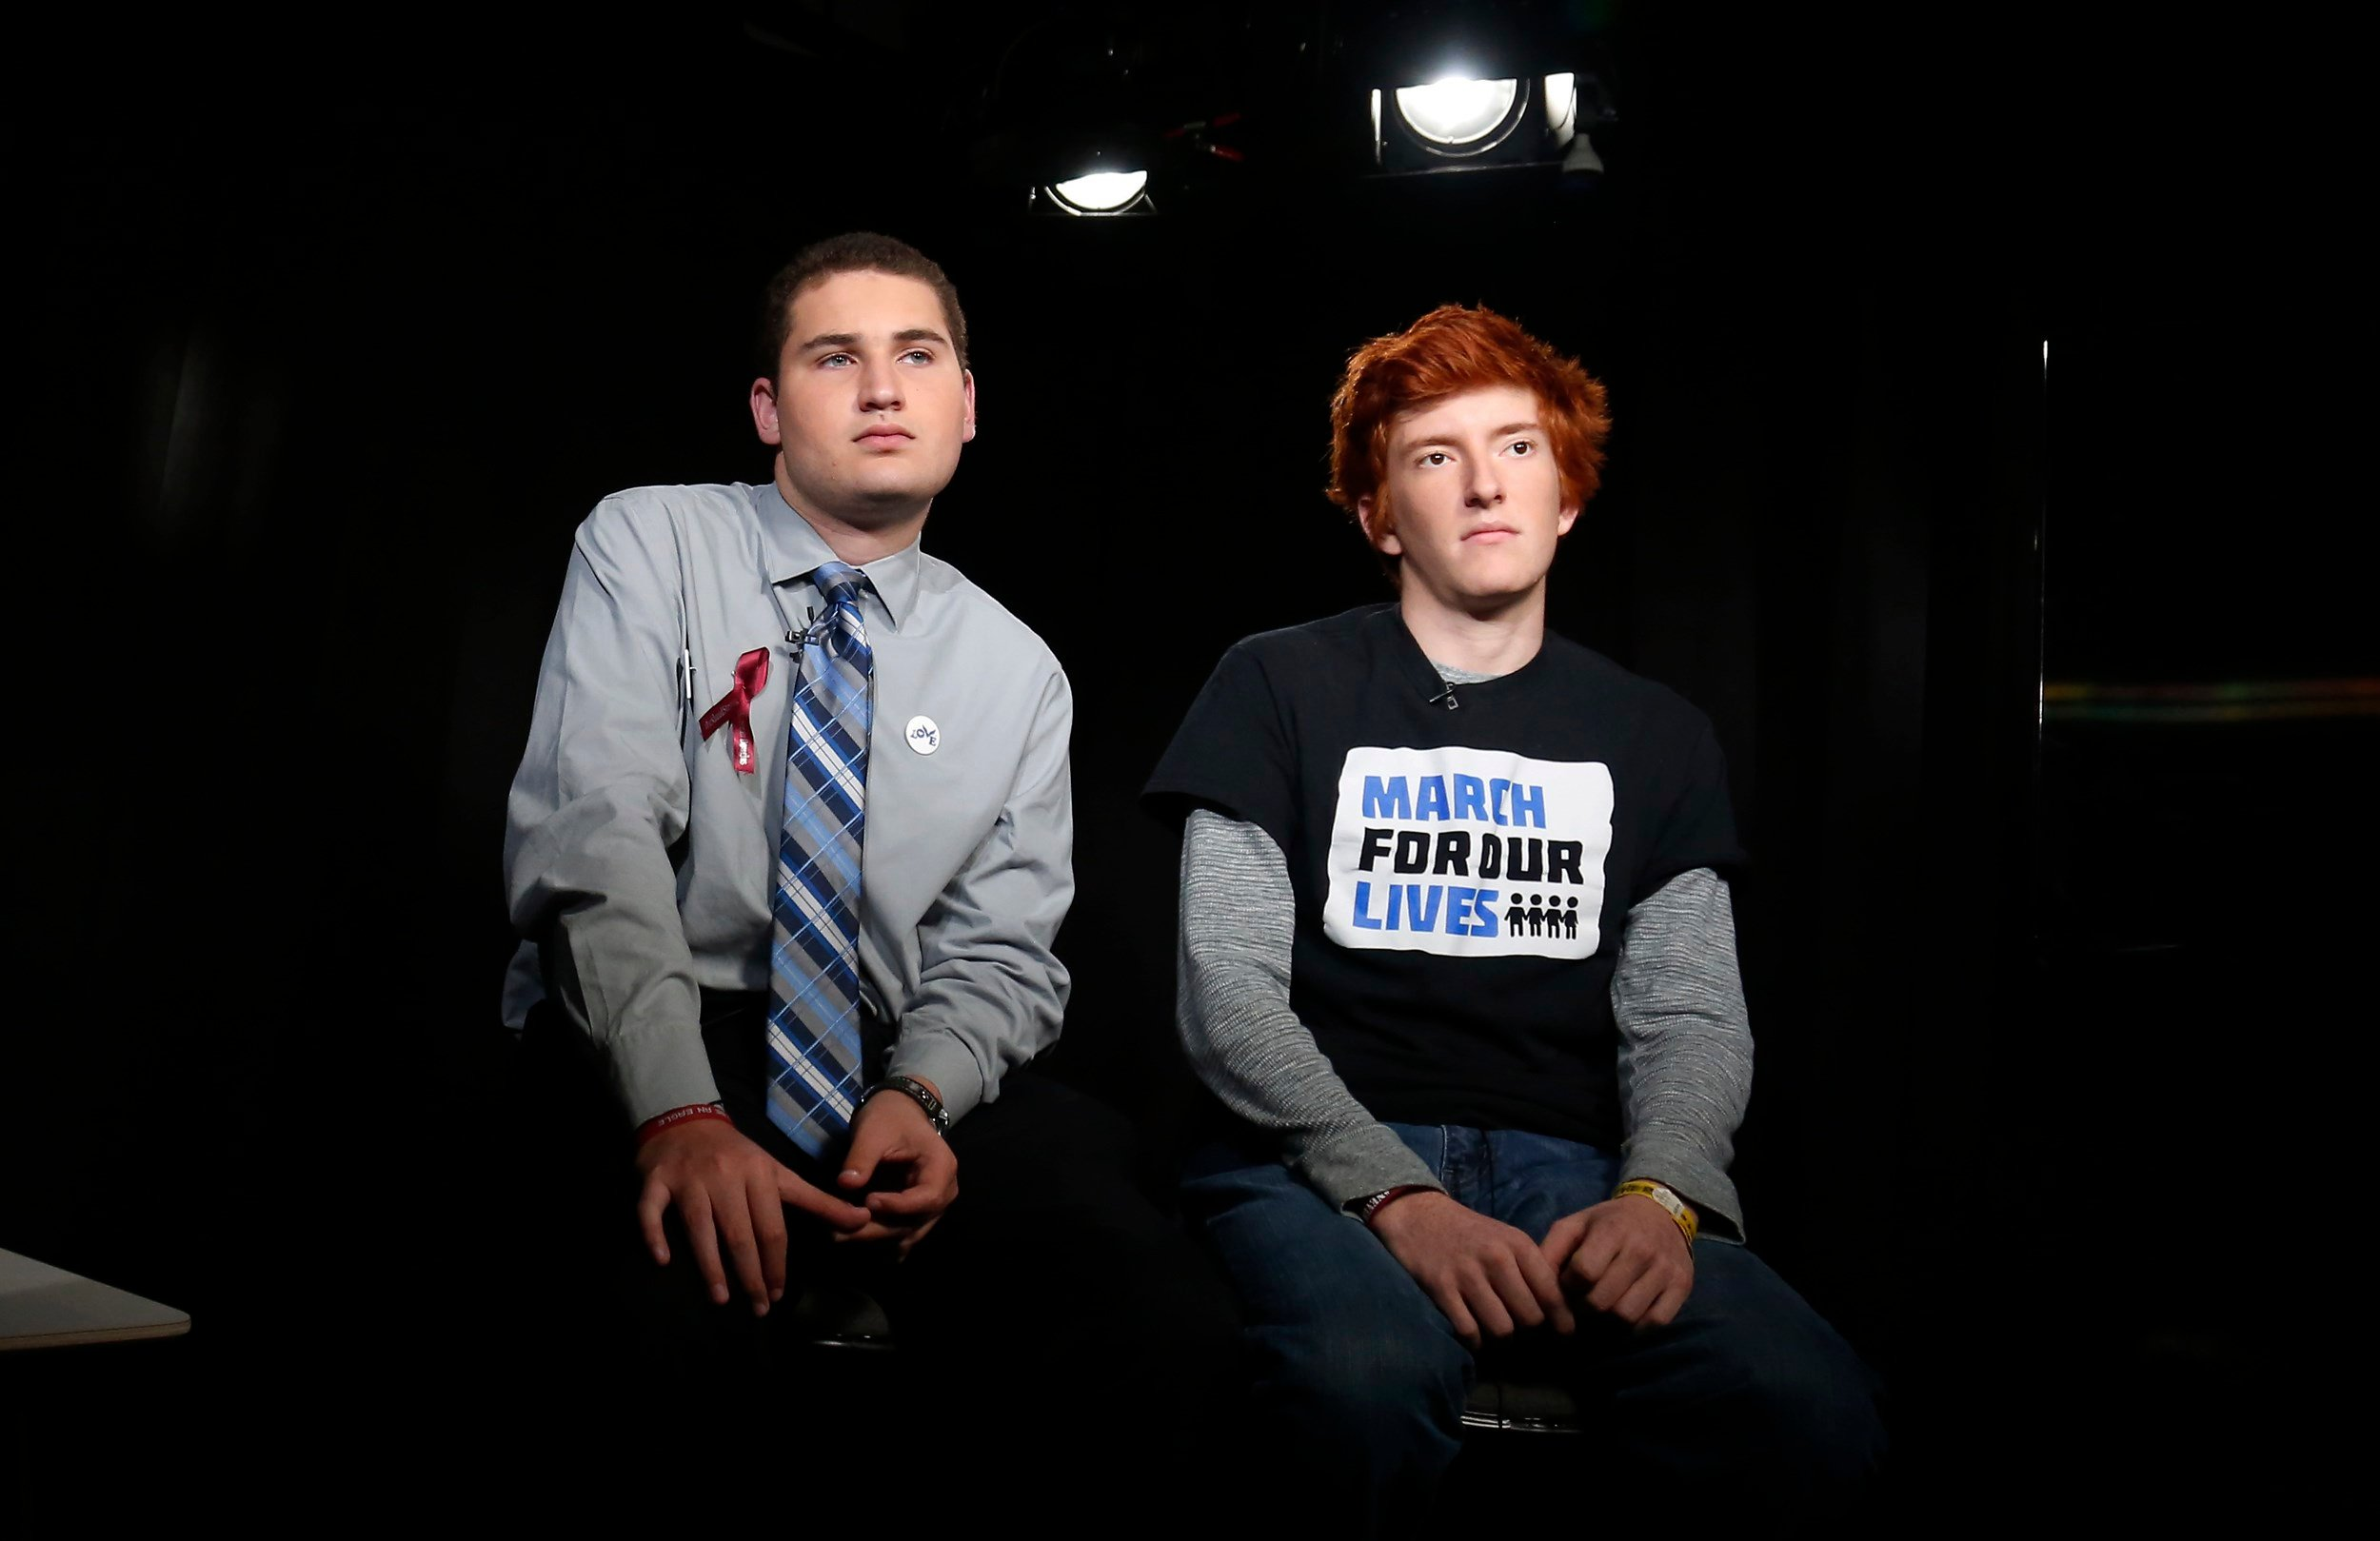 Marjory Stoneman Douglas High School students Alex Wind and Ryan Deitsch, right, discuss the upcoming marches in Washington and elsewhere.